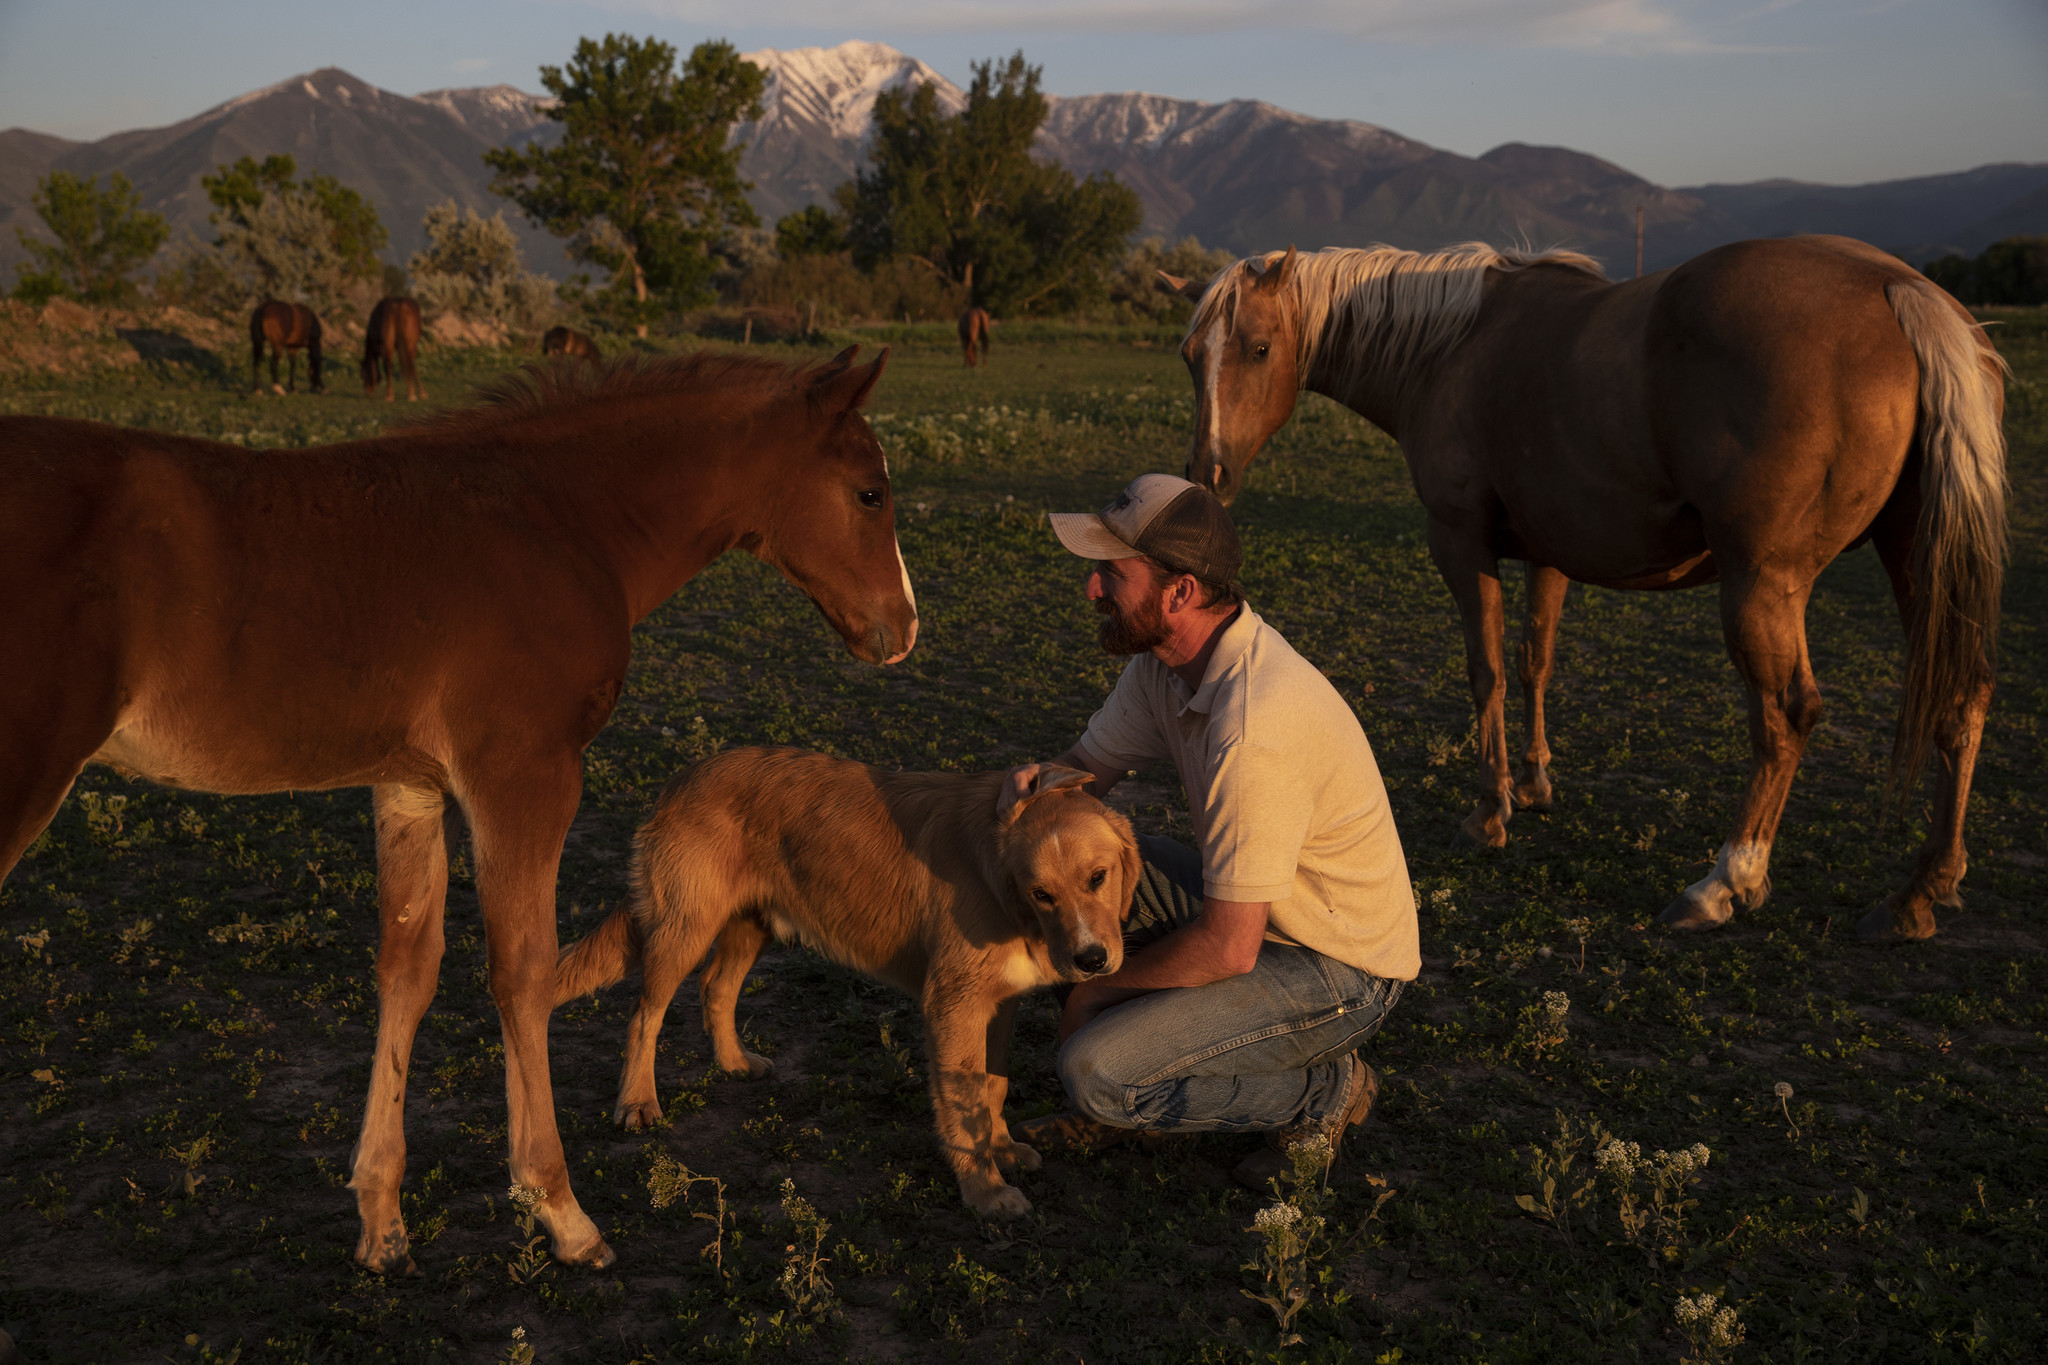 BENJAMIN, UTAH — TUESDAY, JUNE 4, 2019: Nathan Ivie with his golden retriever Max and horses he tra